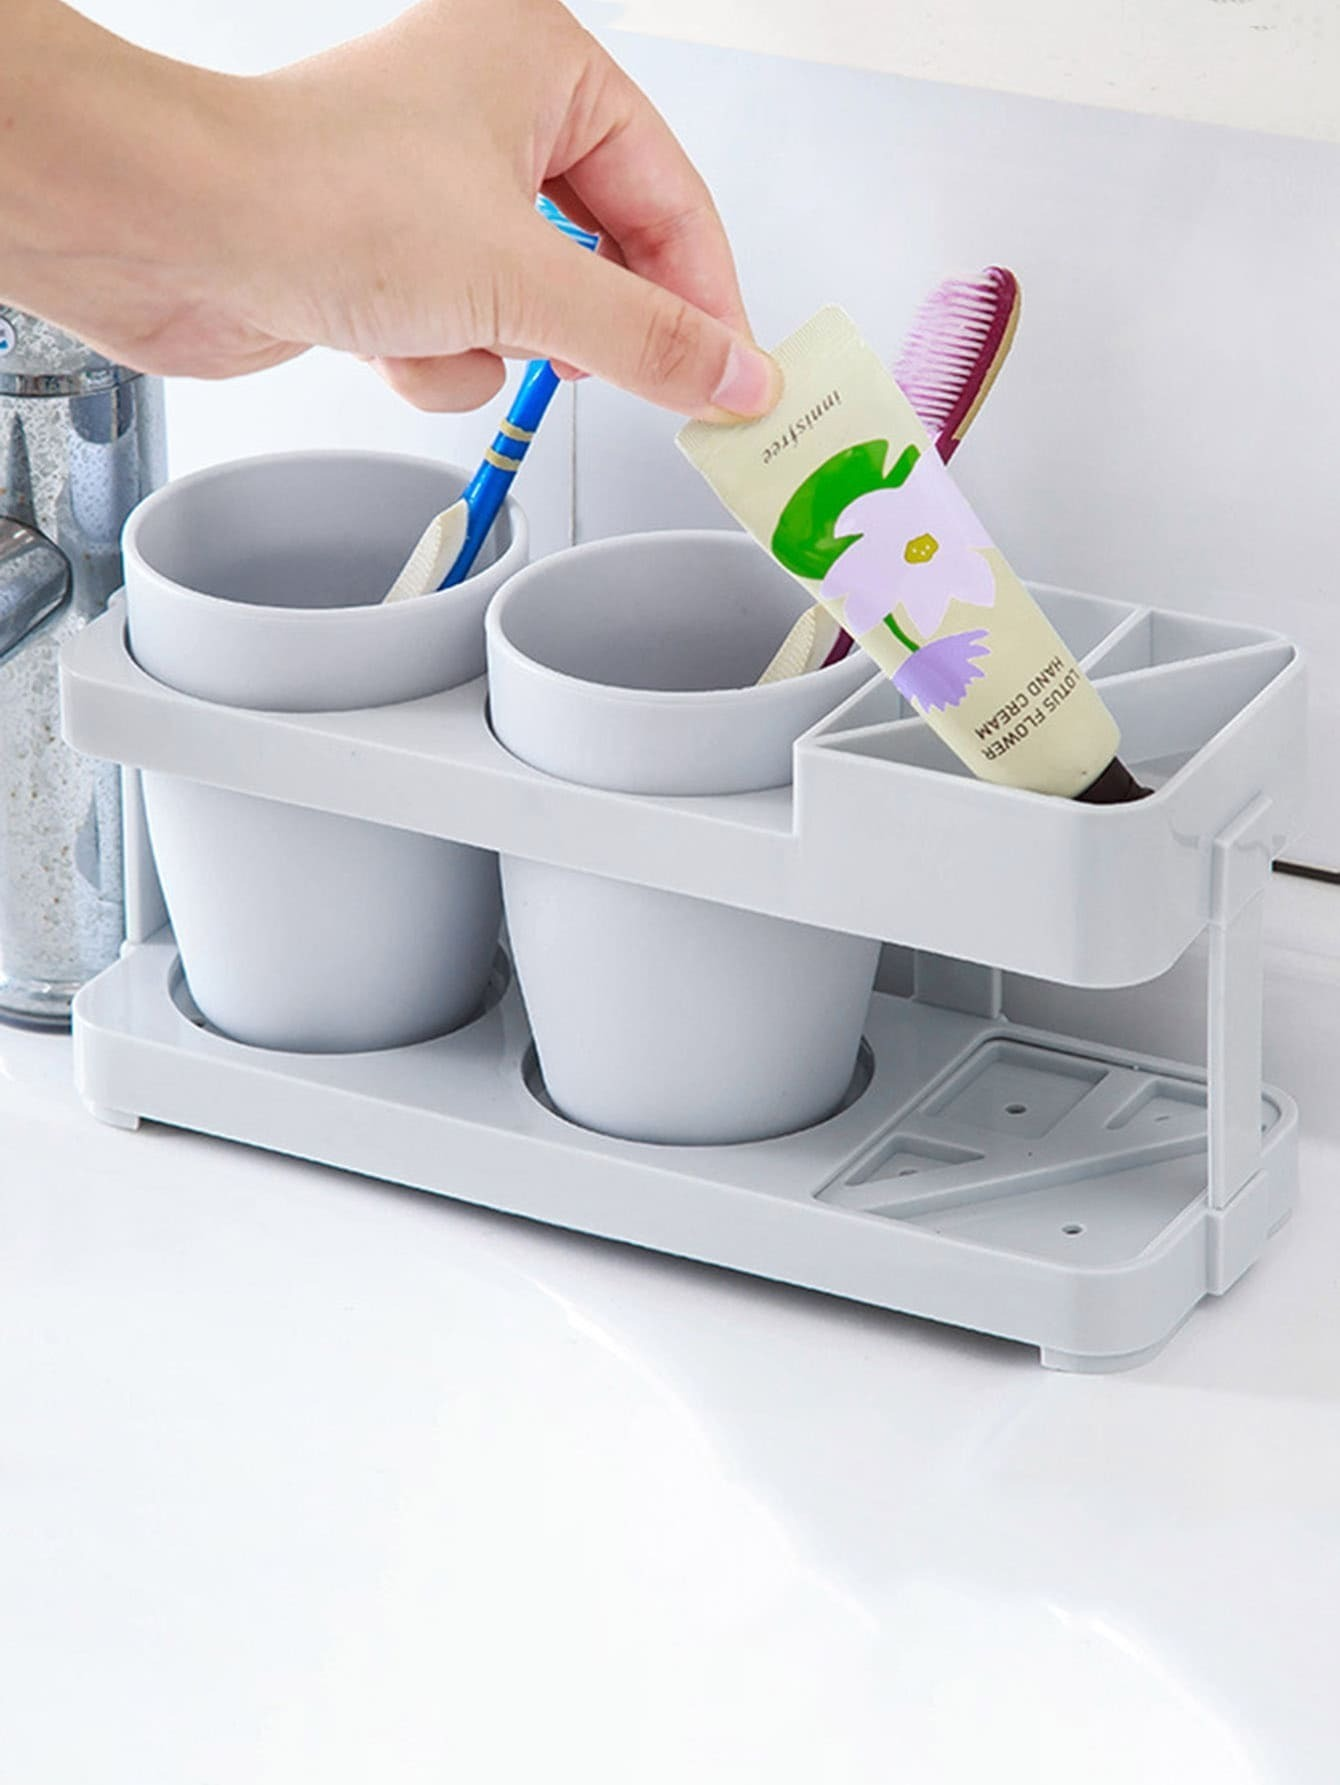 Toothbrush Holder & 2pcs Cup 2017 latest model rubber spray technology black single tumbler cup holder toothbrush holder bathroom accessory